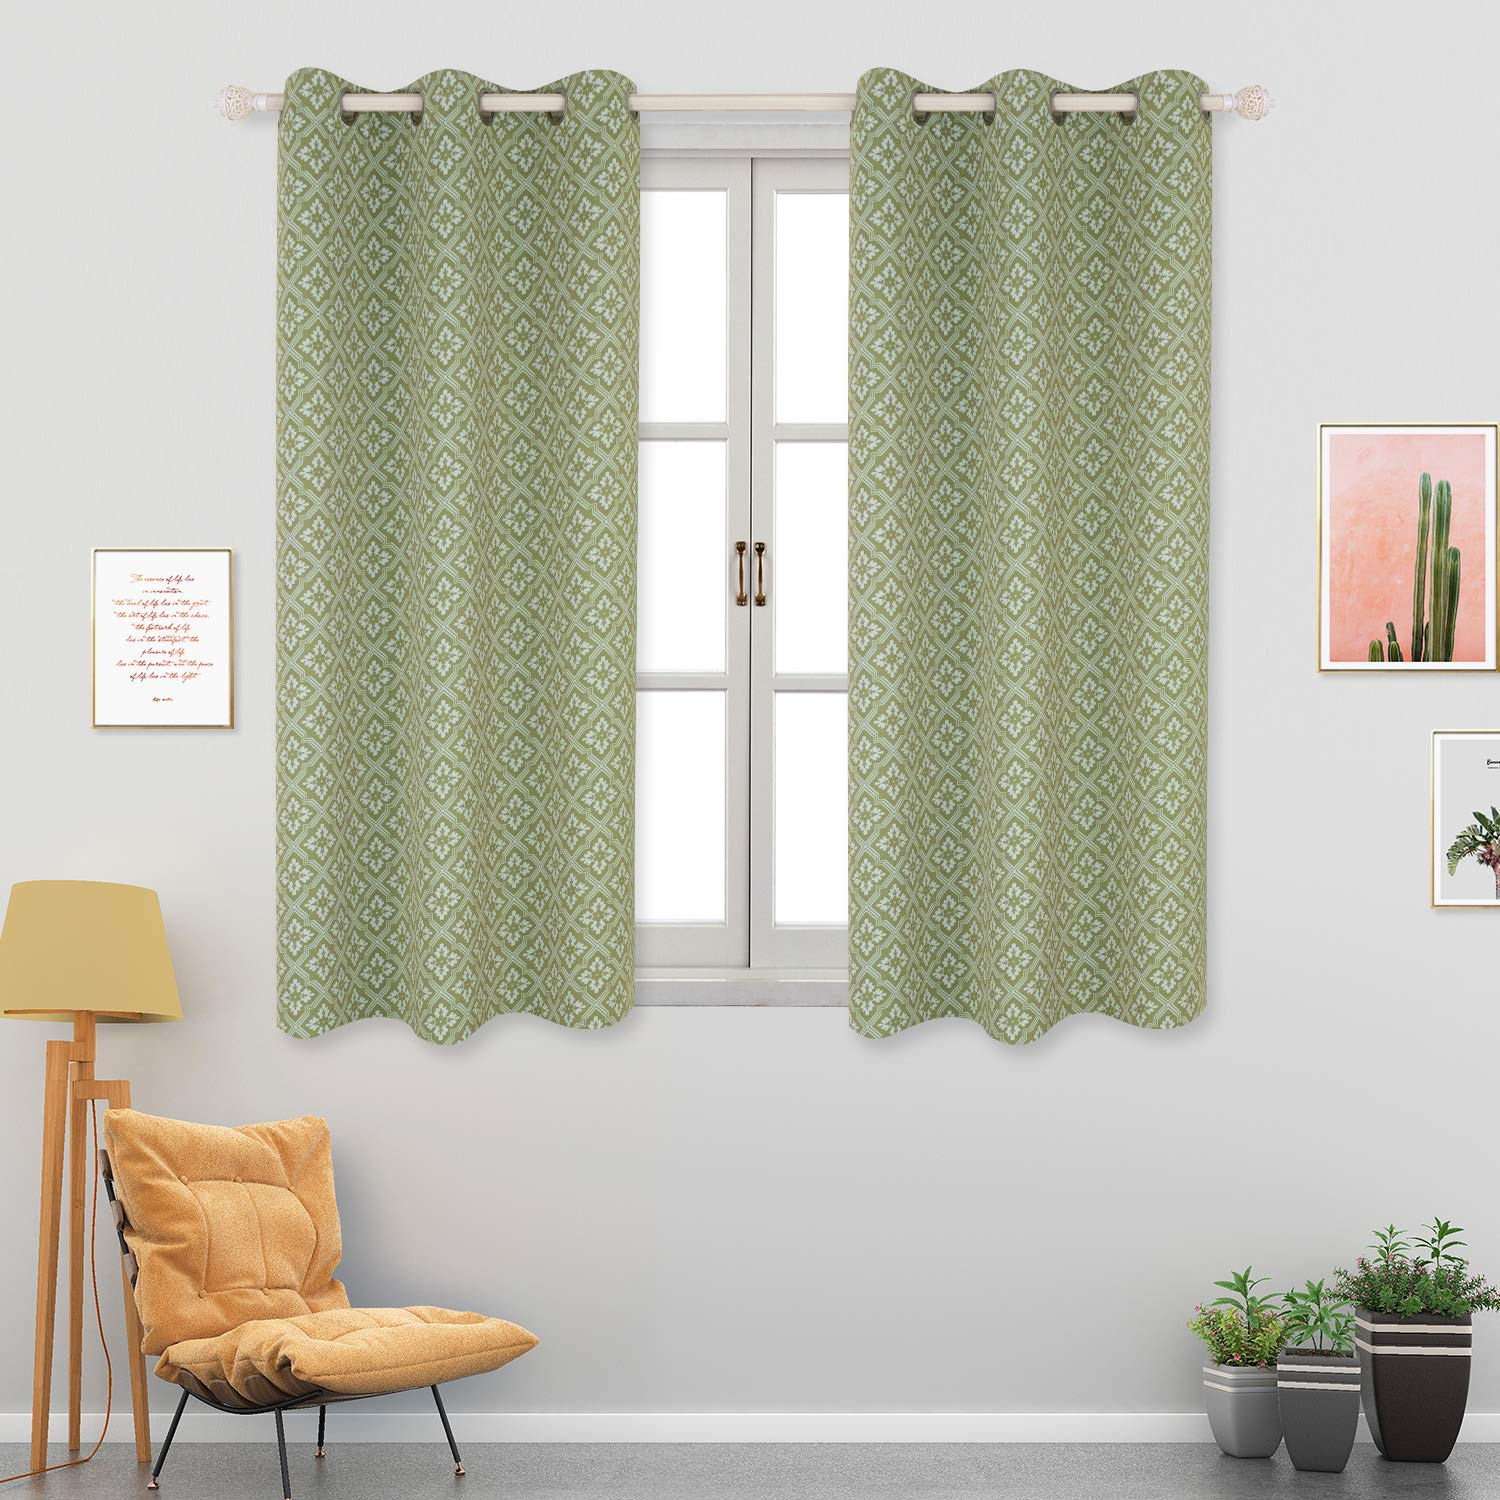 52 x 63 Inch, Green BGment Moroccan Printed Blackout Curtains for Bedroom Grommet Thermal Insulated Room Darkening Lattice Floral Curtains for Living Room Set of 2 Panels